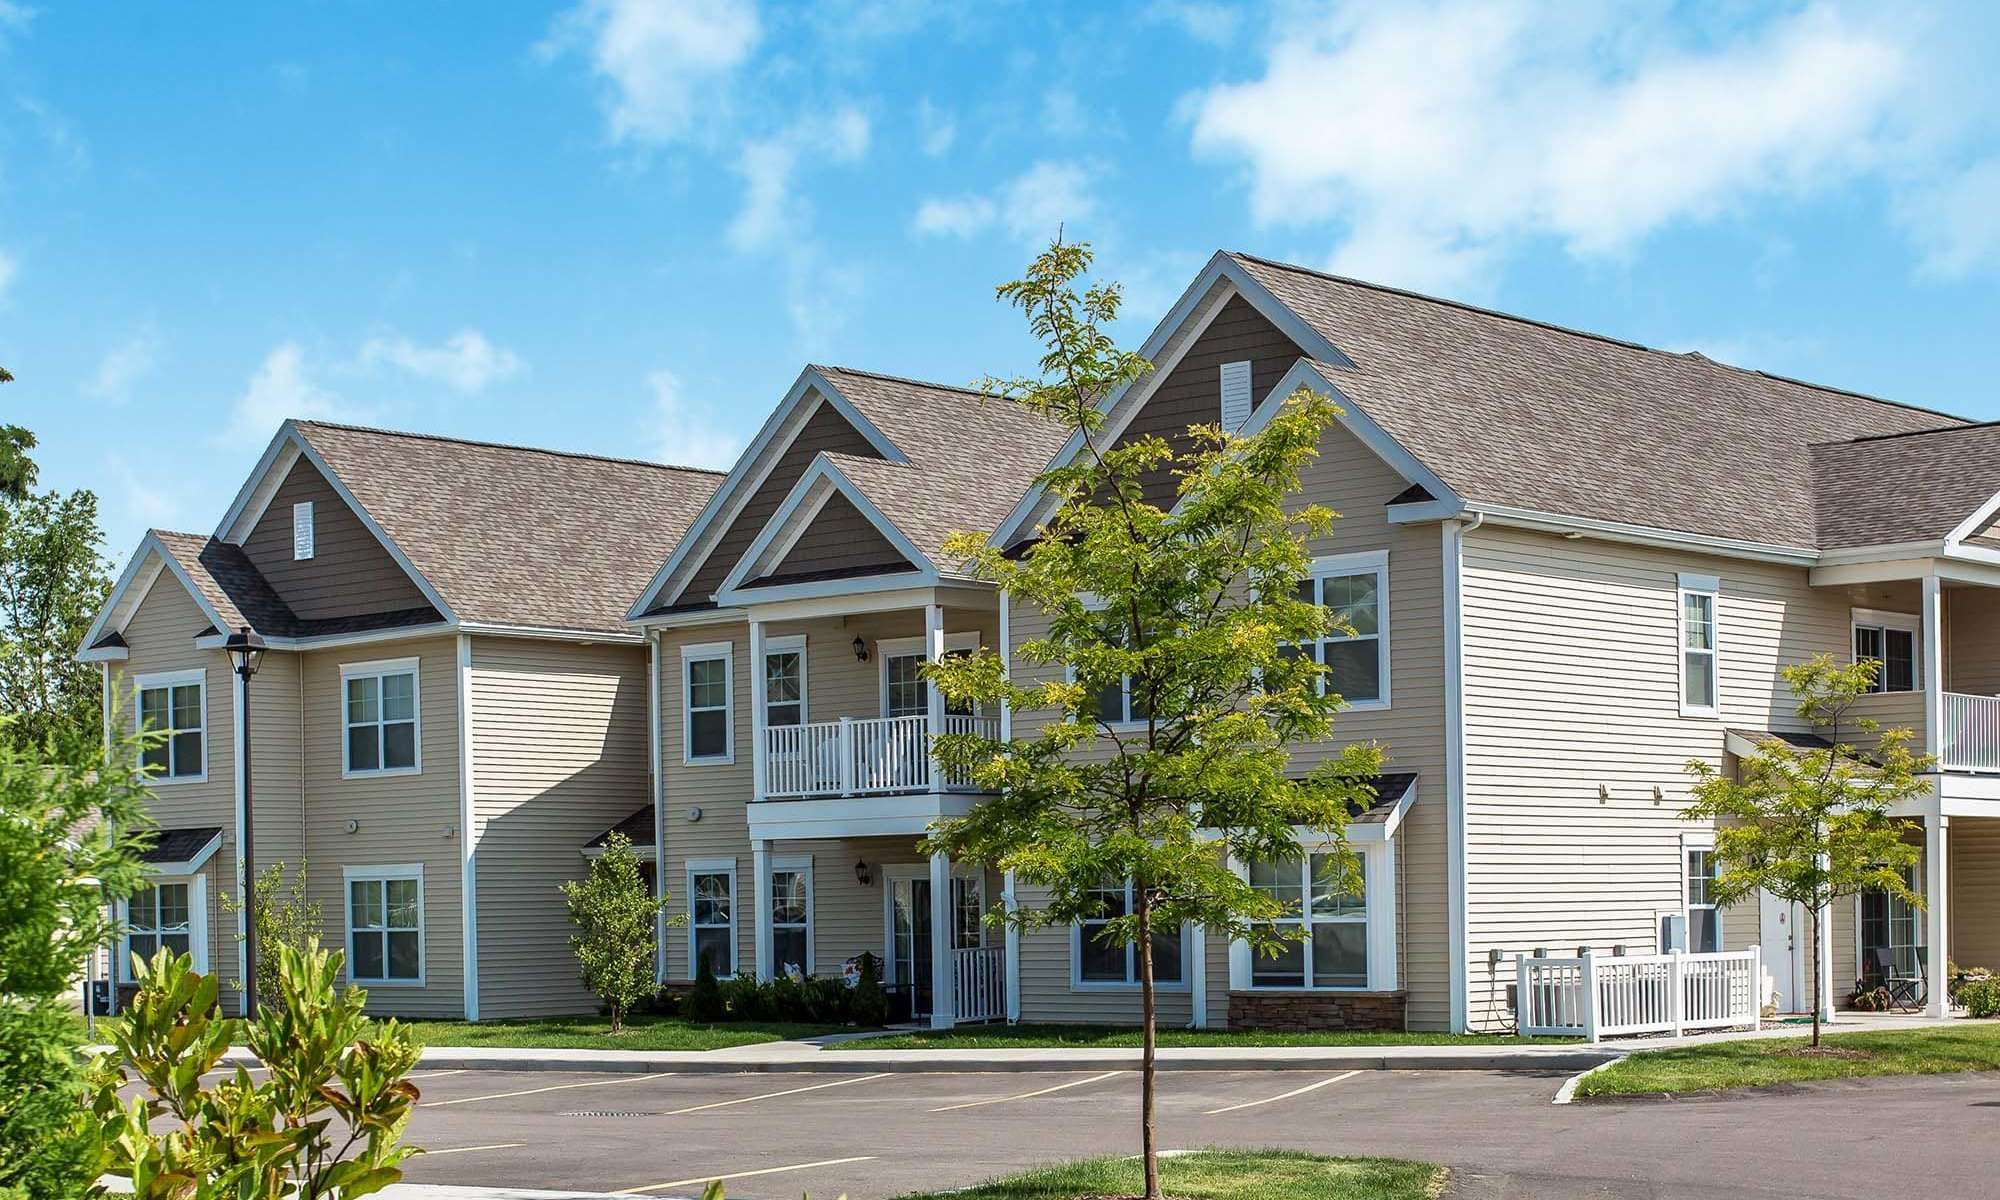 Apartments in Camillus, NY